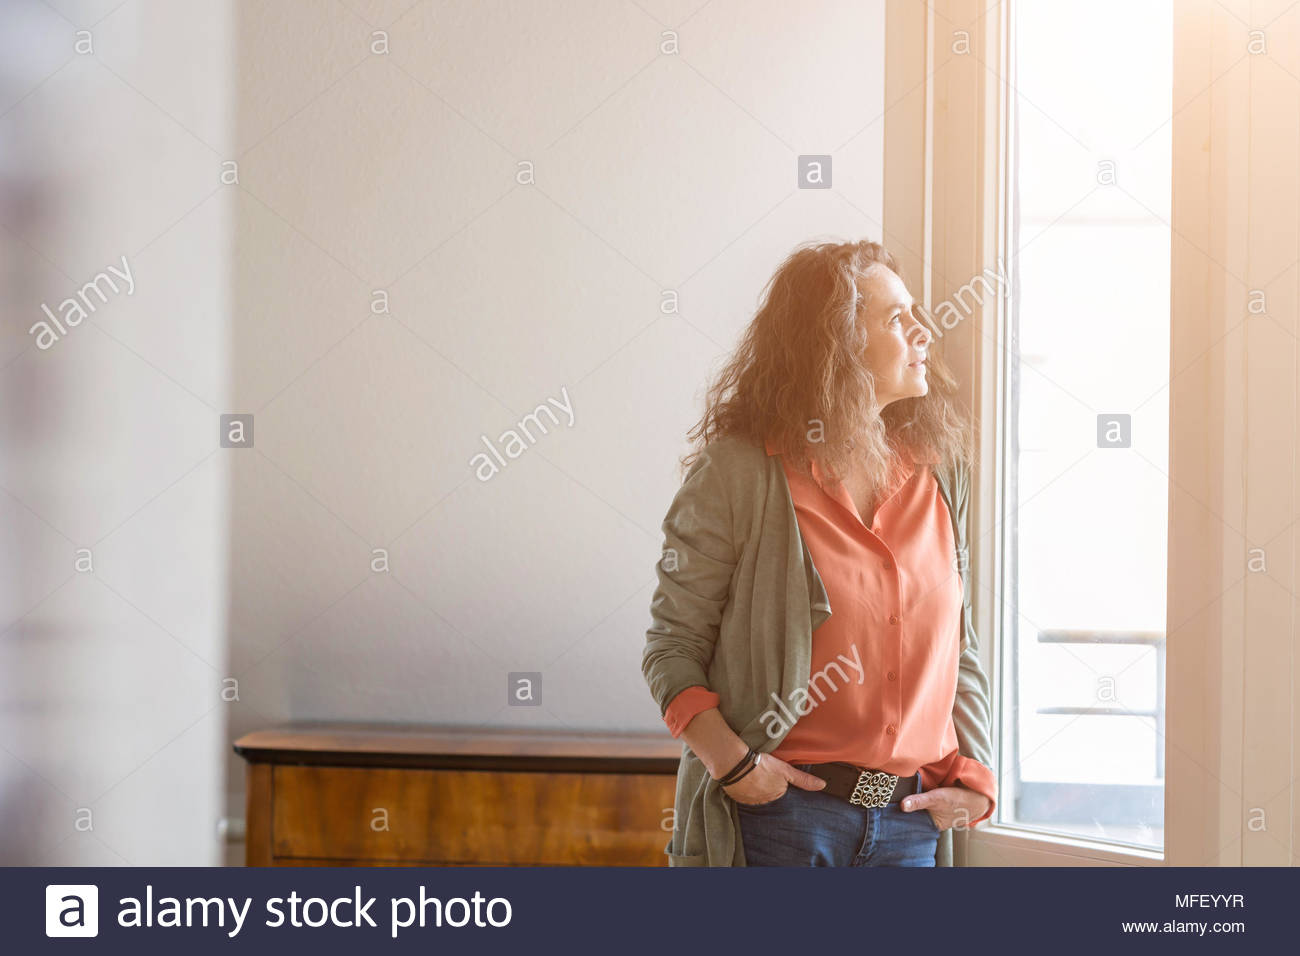 Attractive middle-aged woman standing with her hands in her pockets of her jeans staring out of a window with a thoughtful expression and copy space Stock Photo